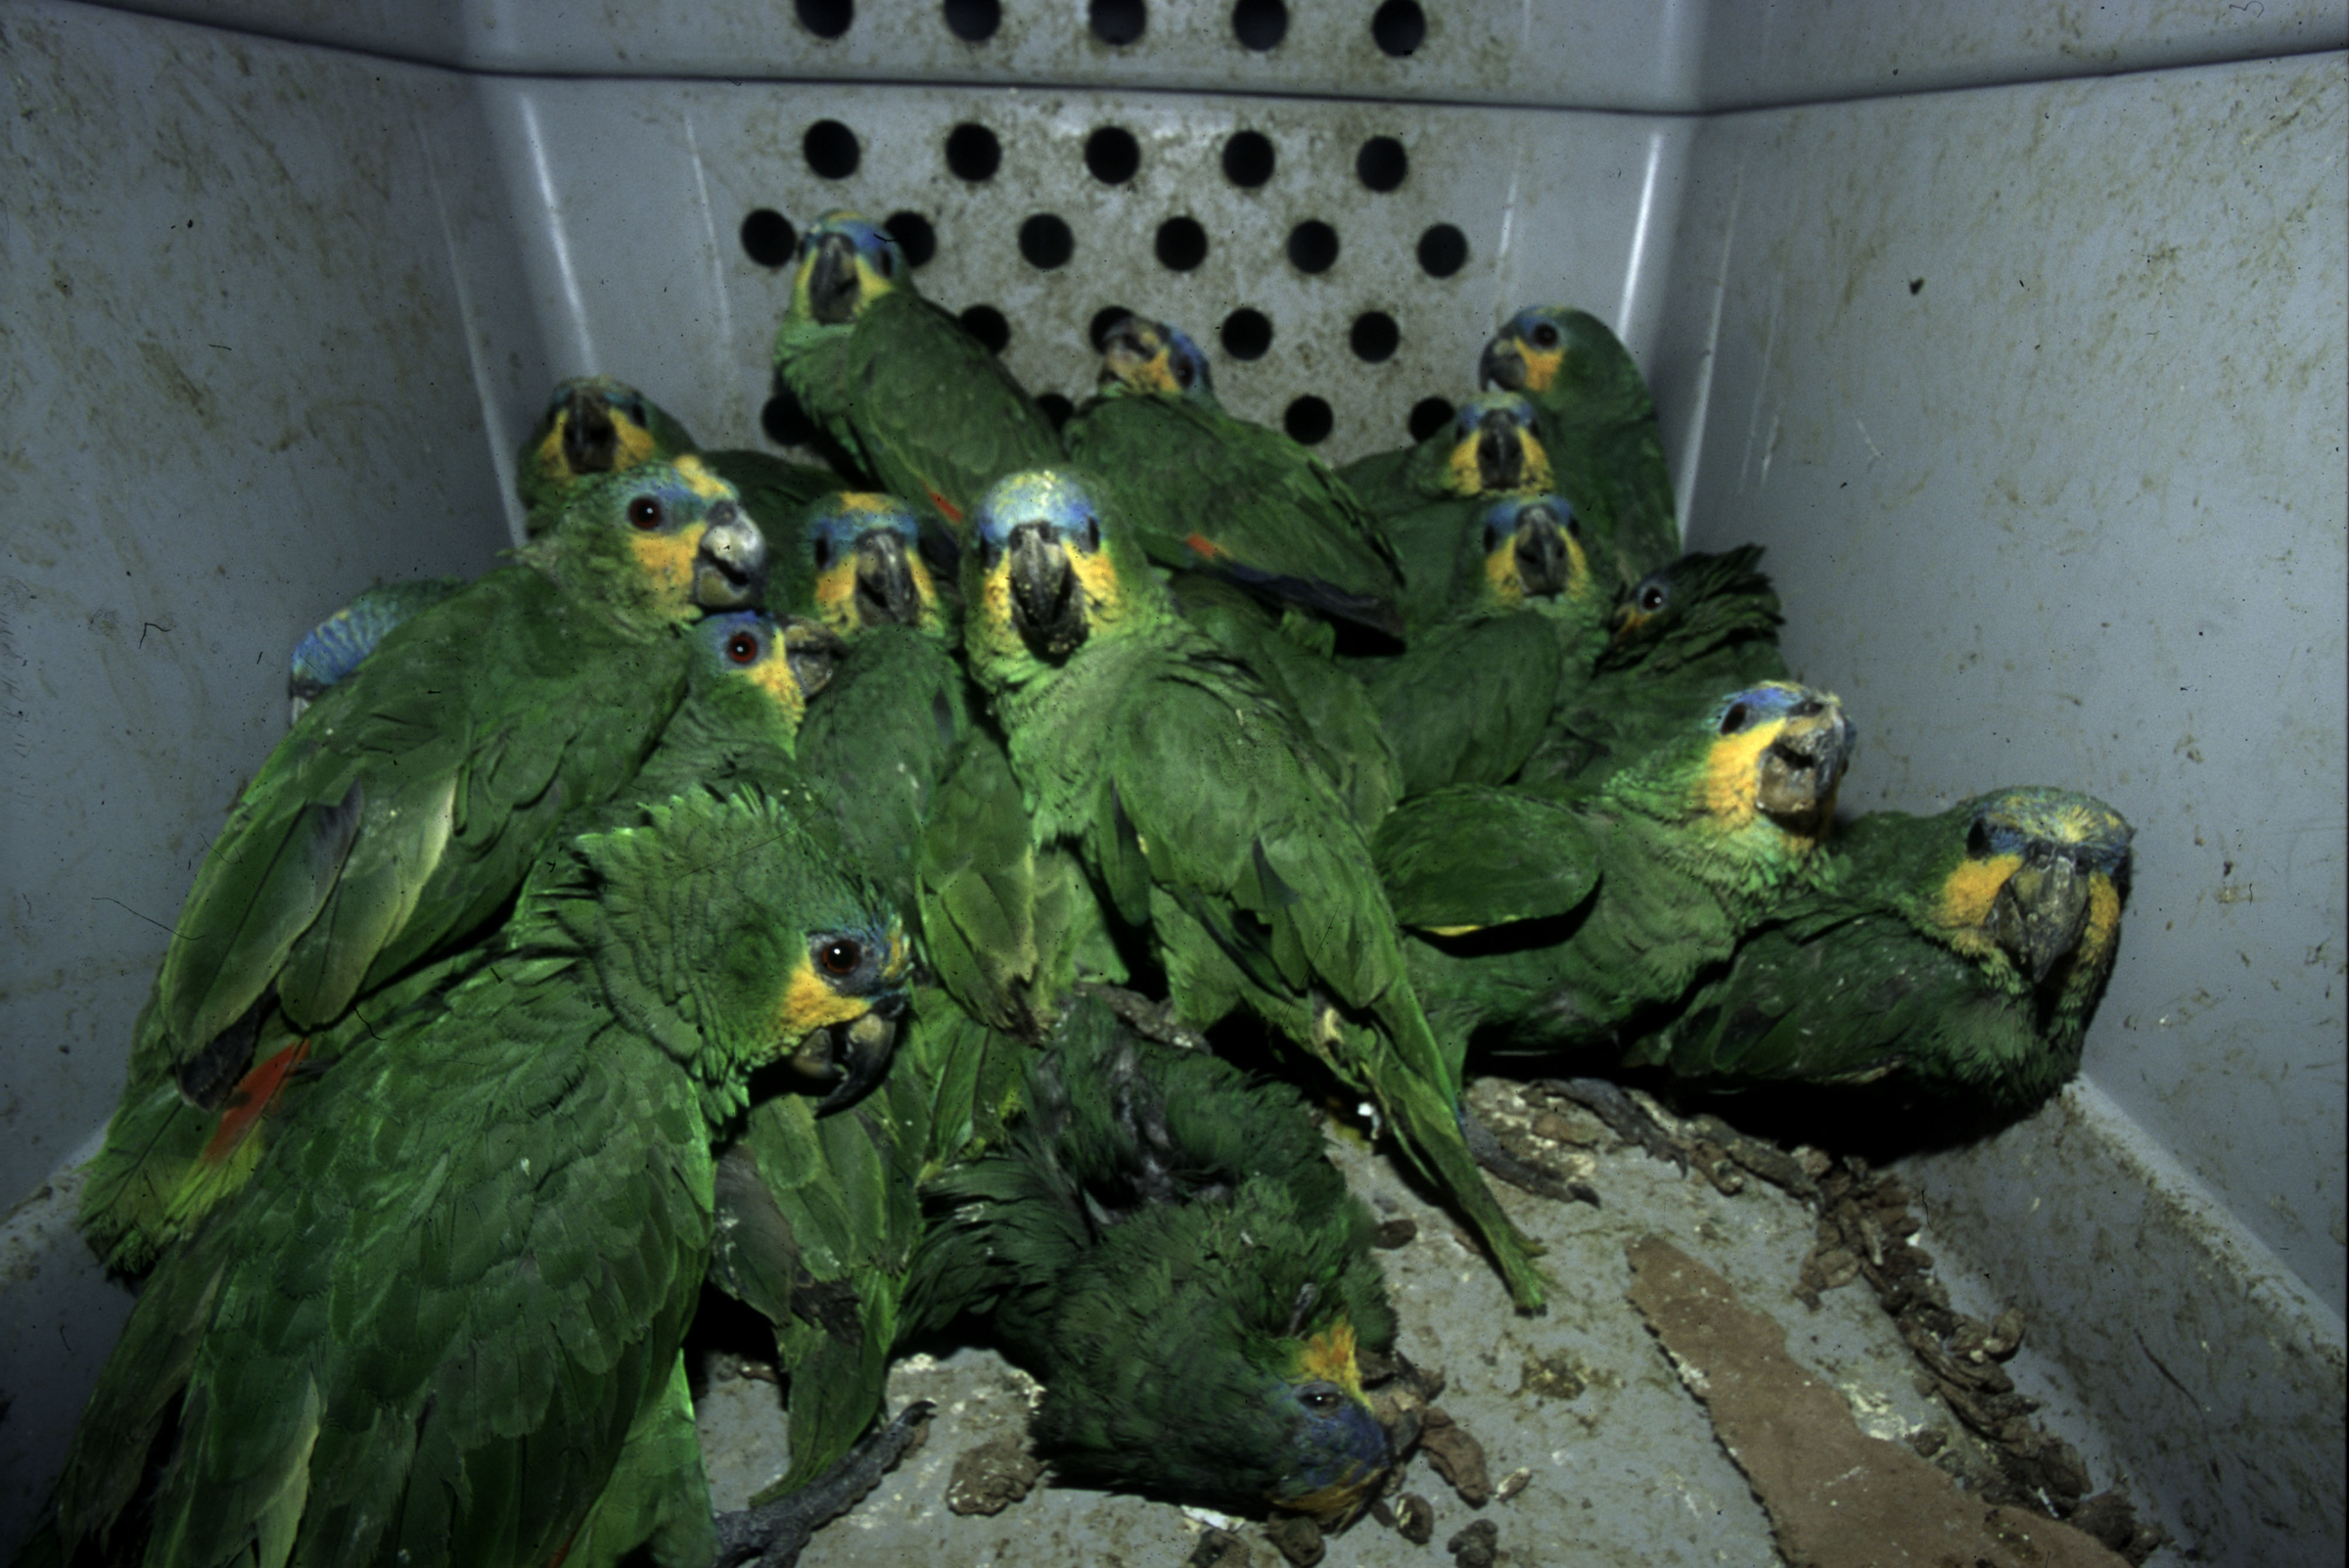 The global wildlife trade is also raising the risk of pandemics, conservationists warn (Roger Leguen / WWF)